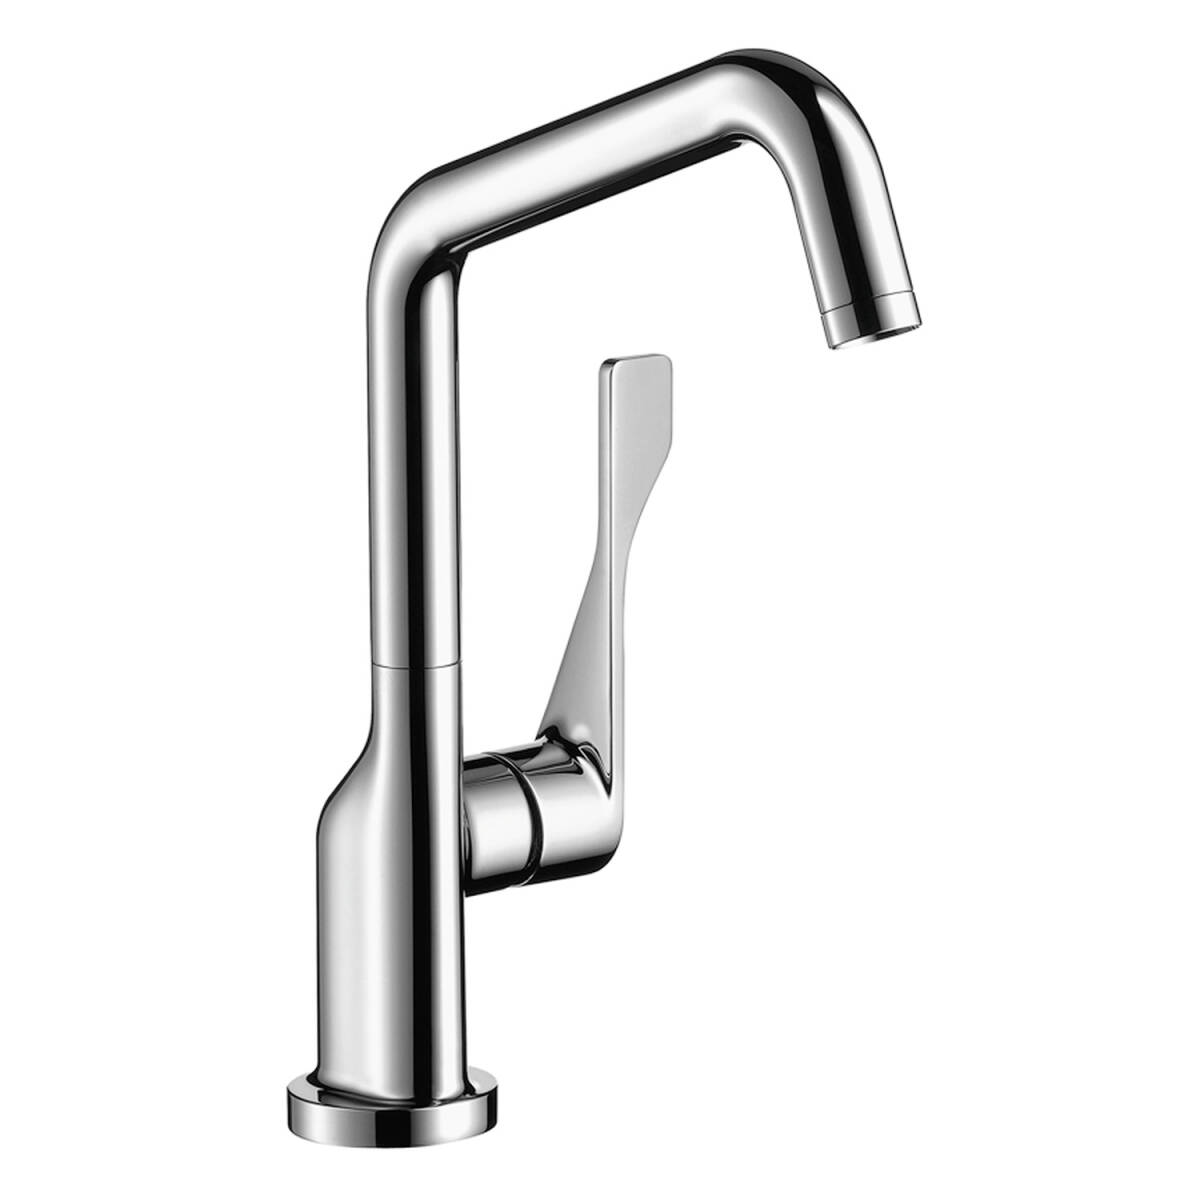 Single lever kitchen mixer 260 with swivel spout 1.5 GPM, Chrome, 39850001